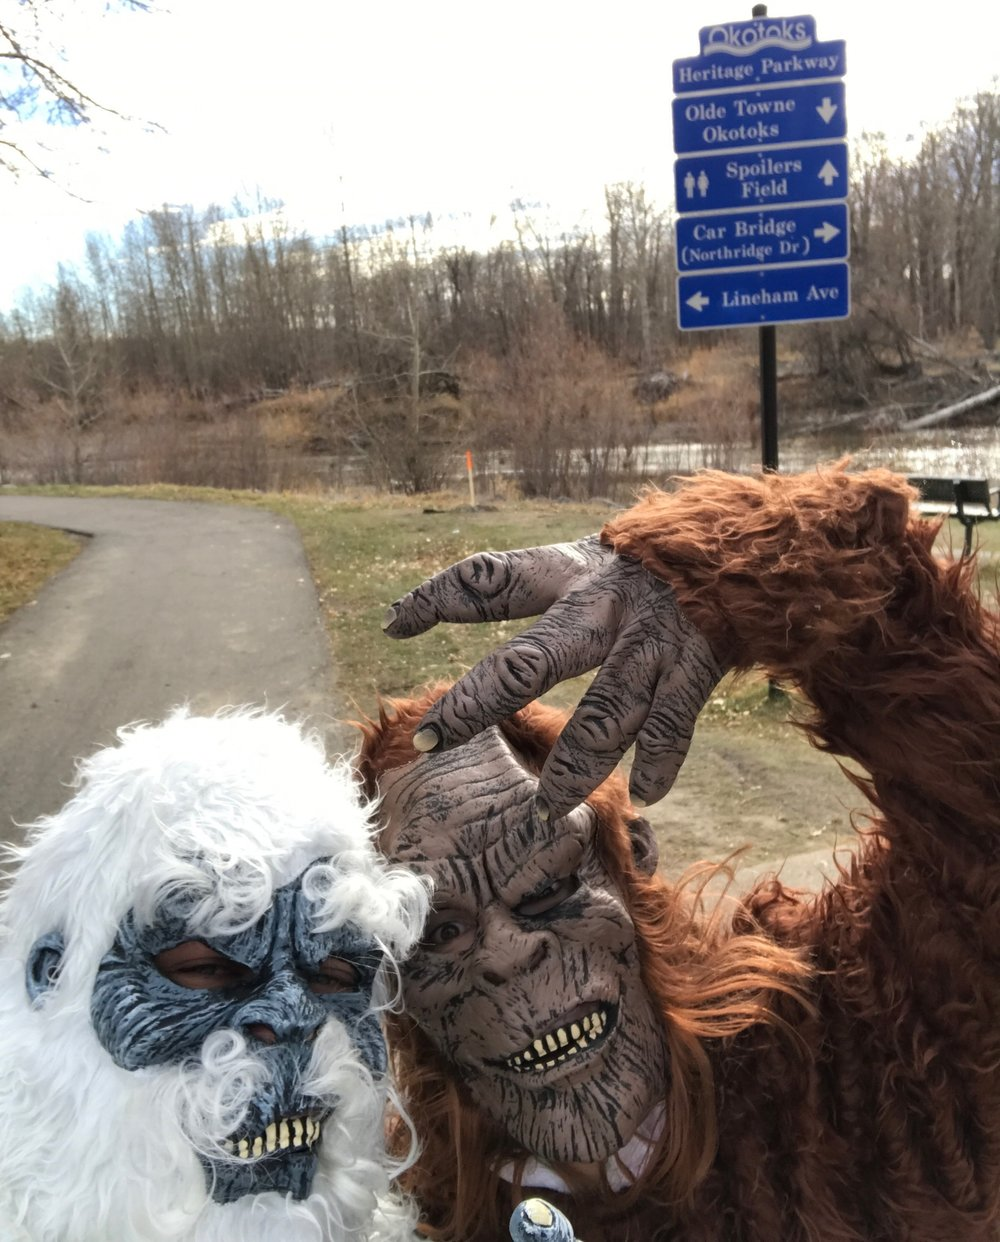 Yeti and gorilla in Lions Park causing havoc! (a.k.a., Brett and Julie)You are da bomb! Brett also purchased all the Dashers appies at the end of the day! You da man Brett!